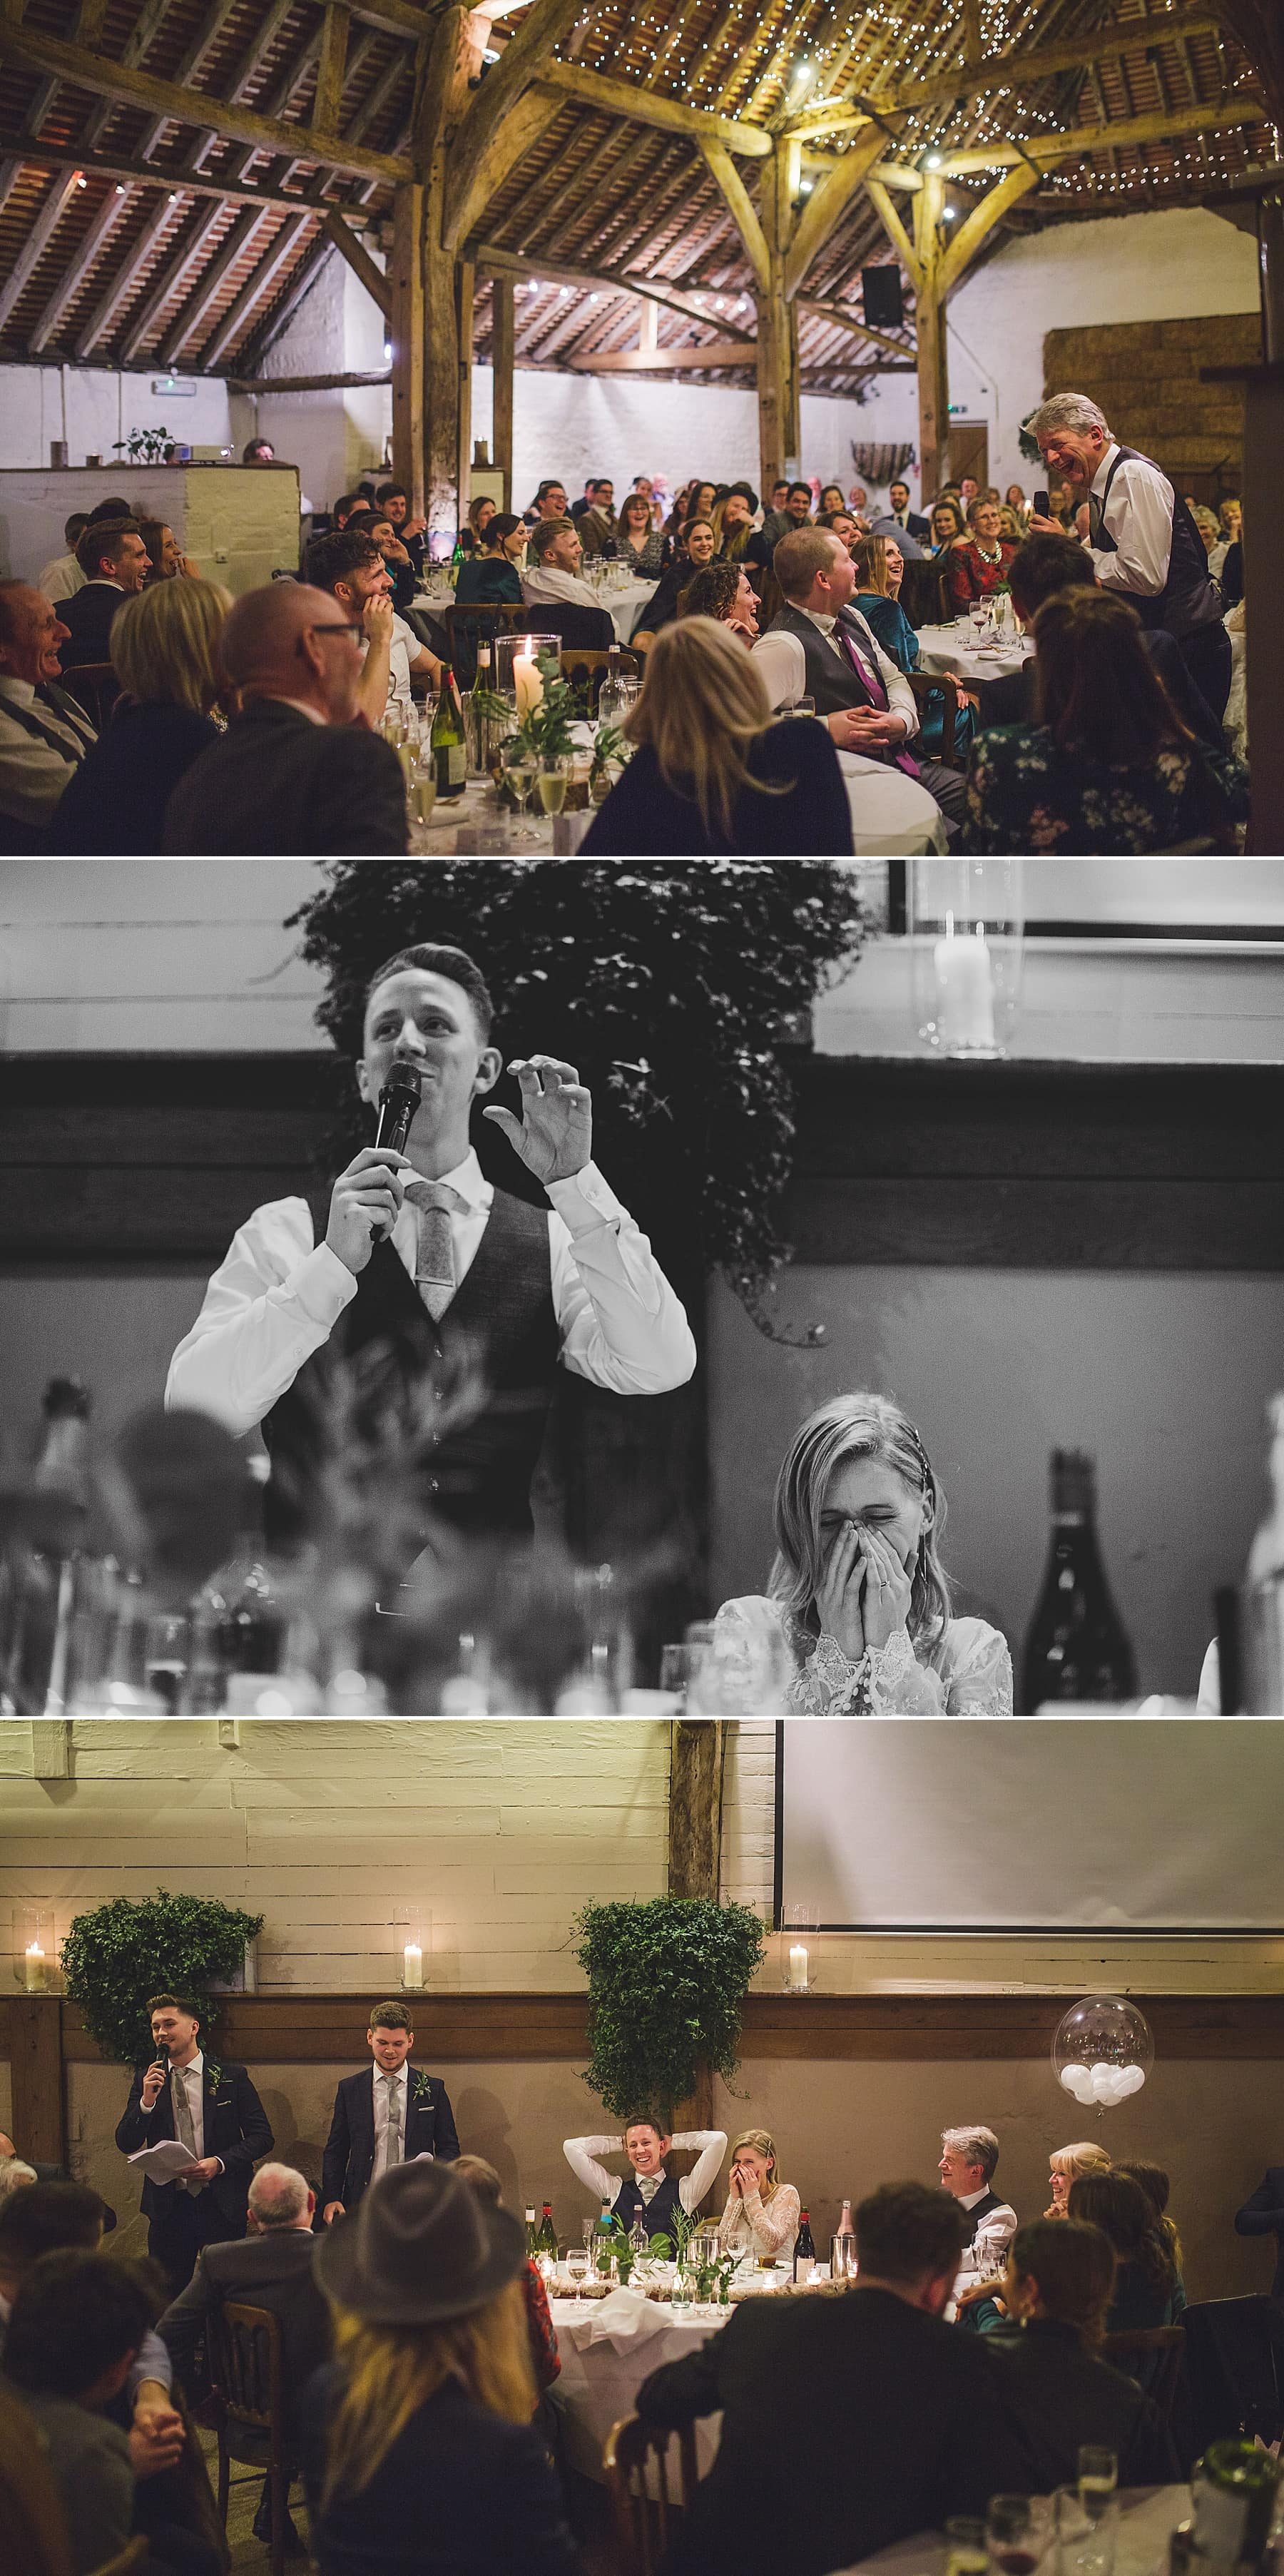 brighton wedding photographer,hugh and emily potter,st peters church brighton,pang dean old barn,confetti exit,